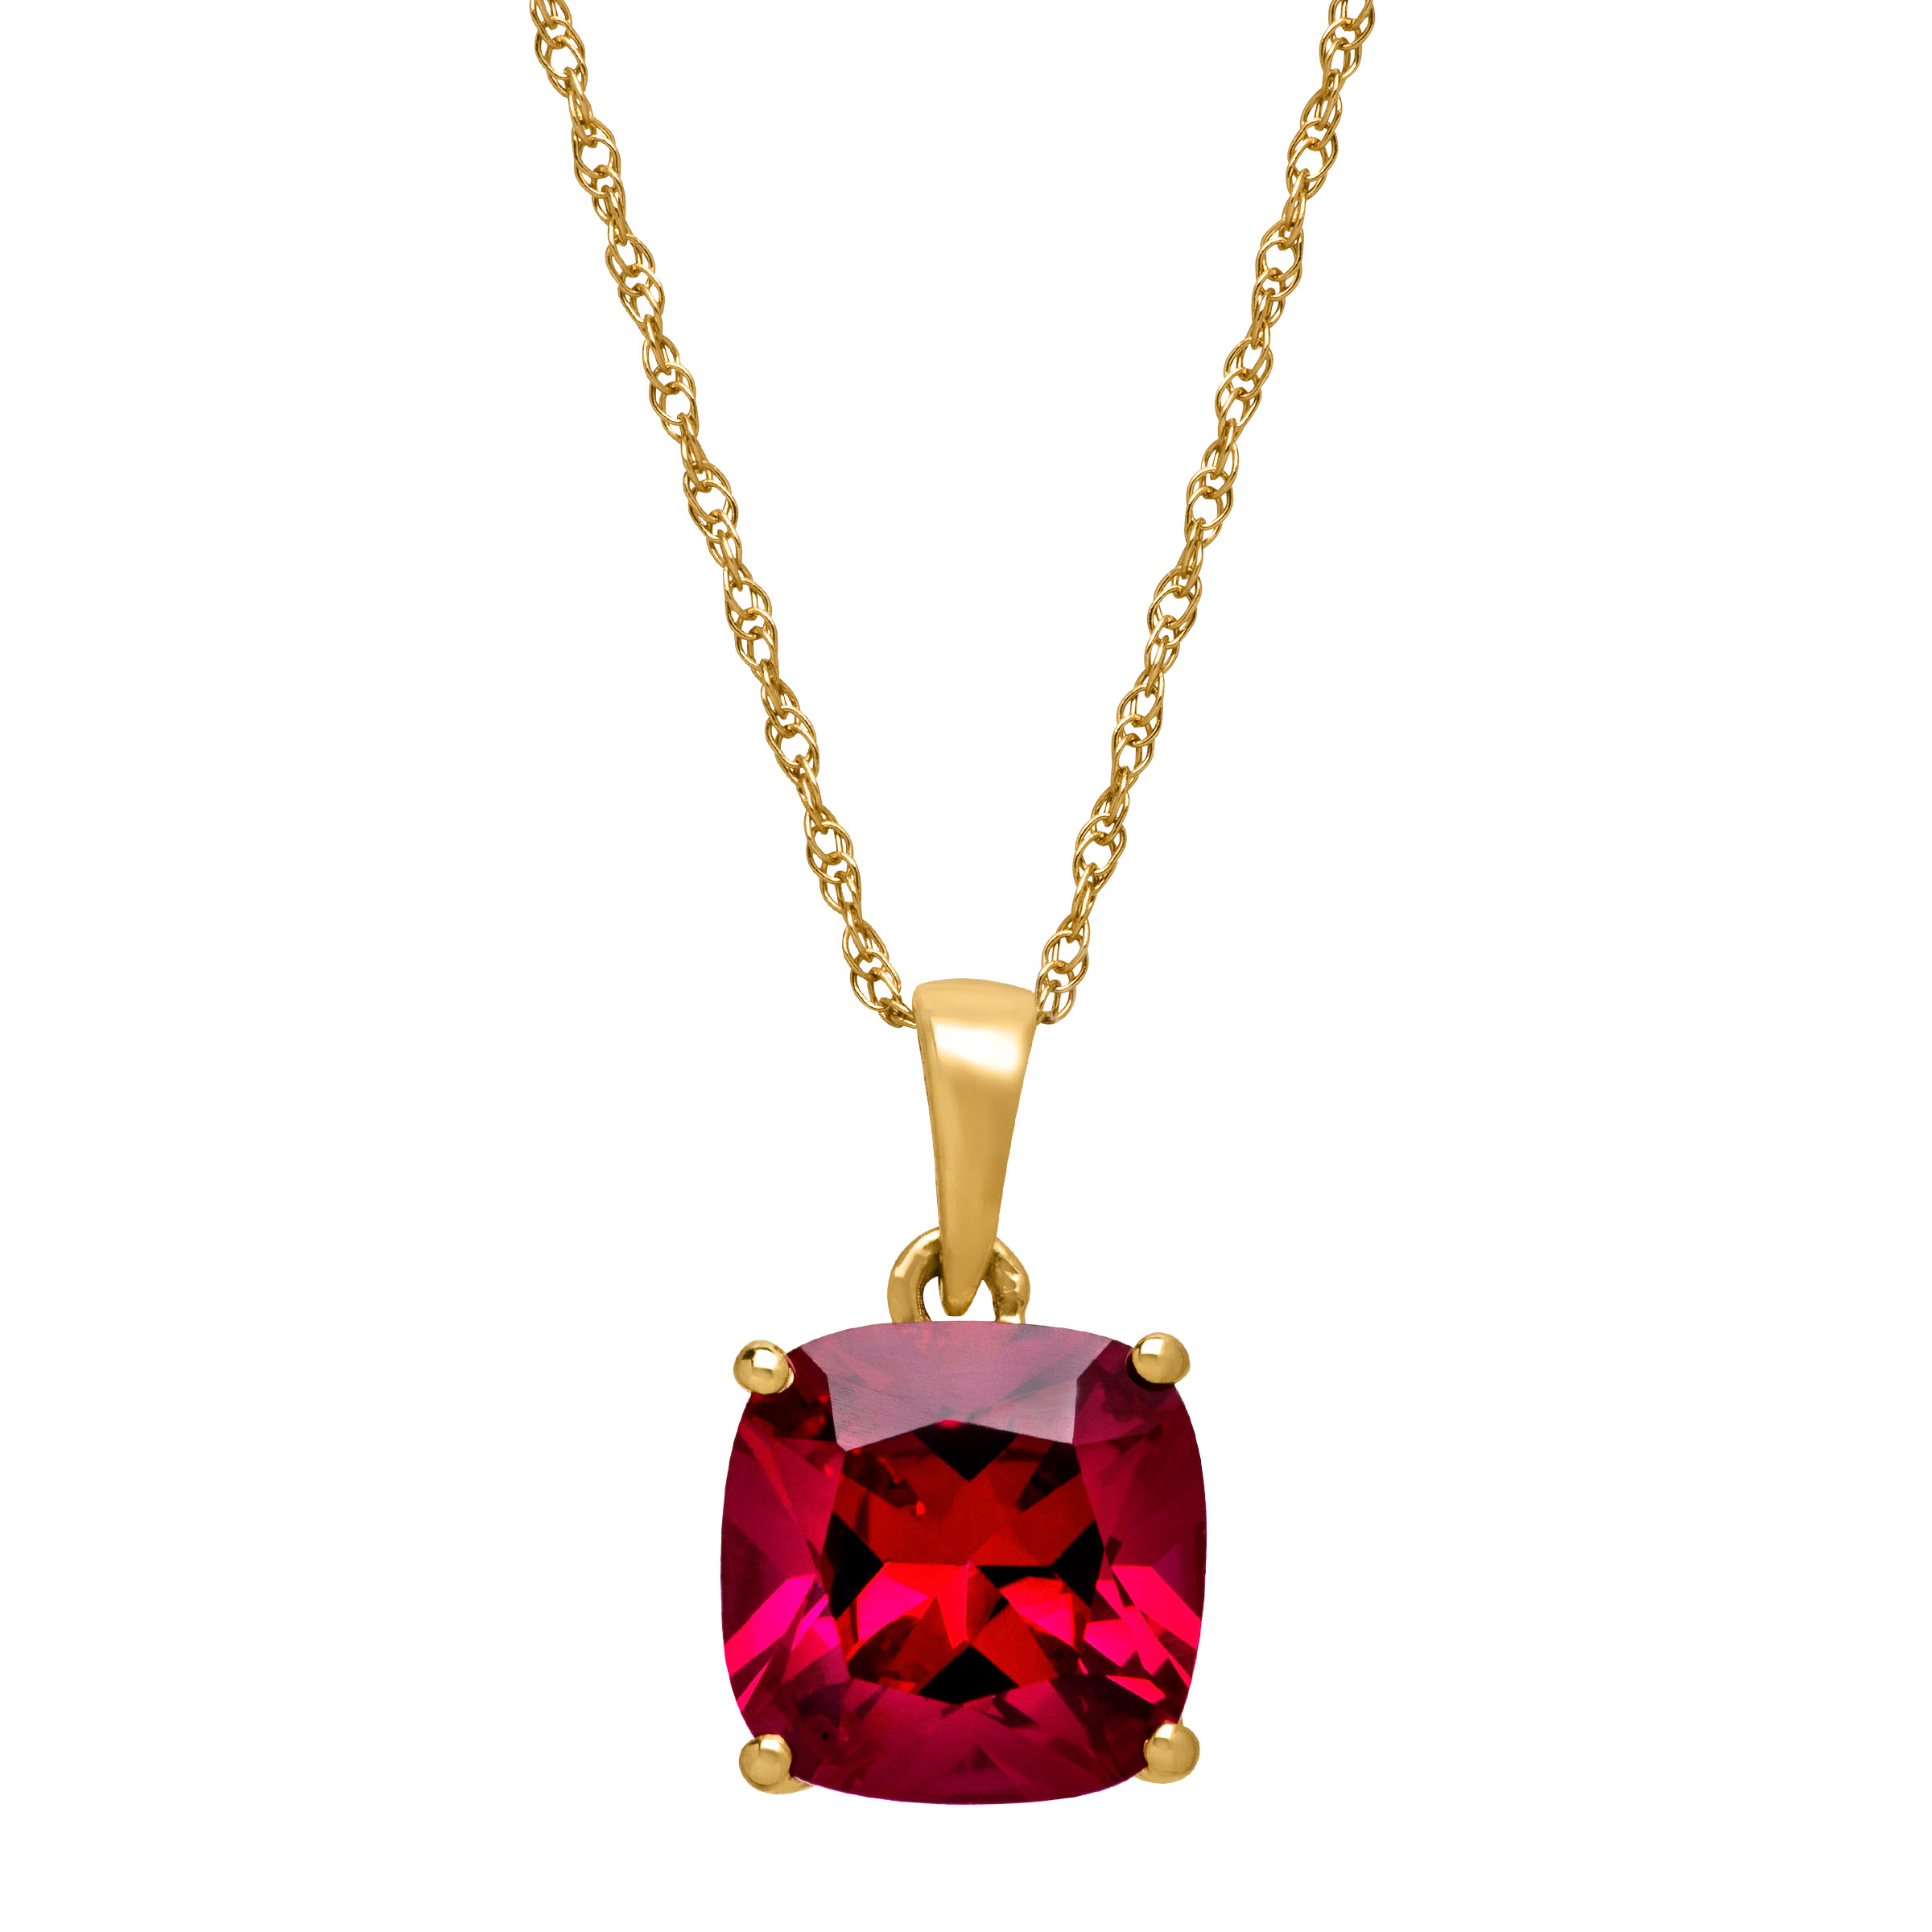 """2 7 8 ct Cushion-Cut Created Ruby Solitaire Pendant Necklace in 14kt Yellow Gold, 18"""" by Richline Group"""